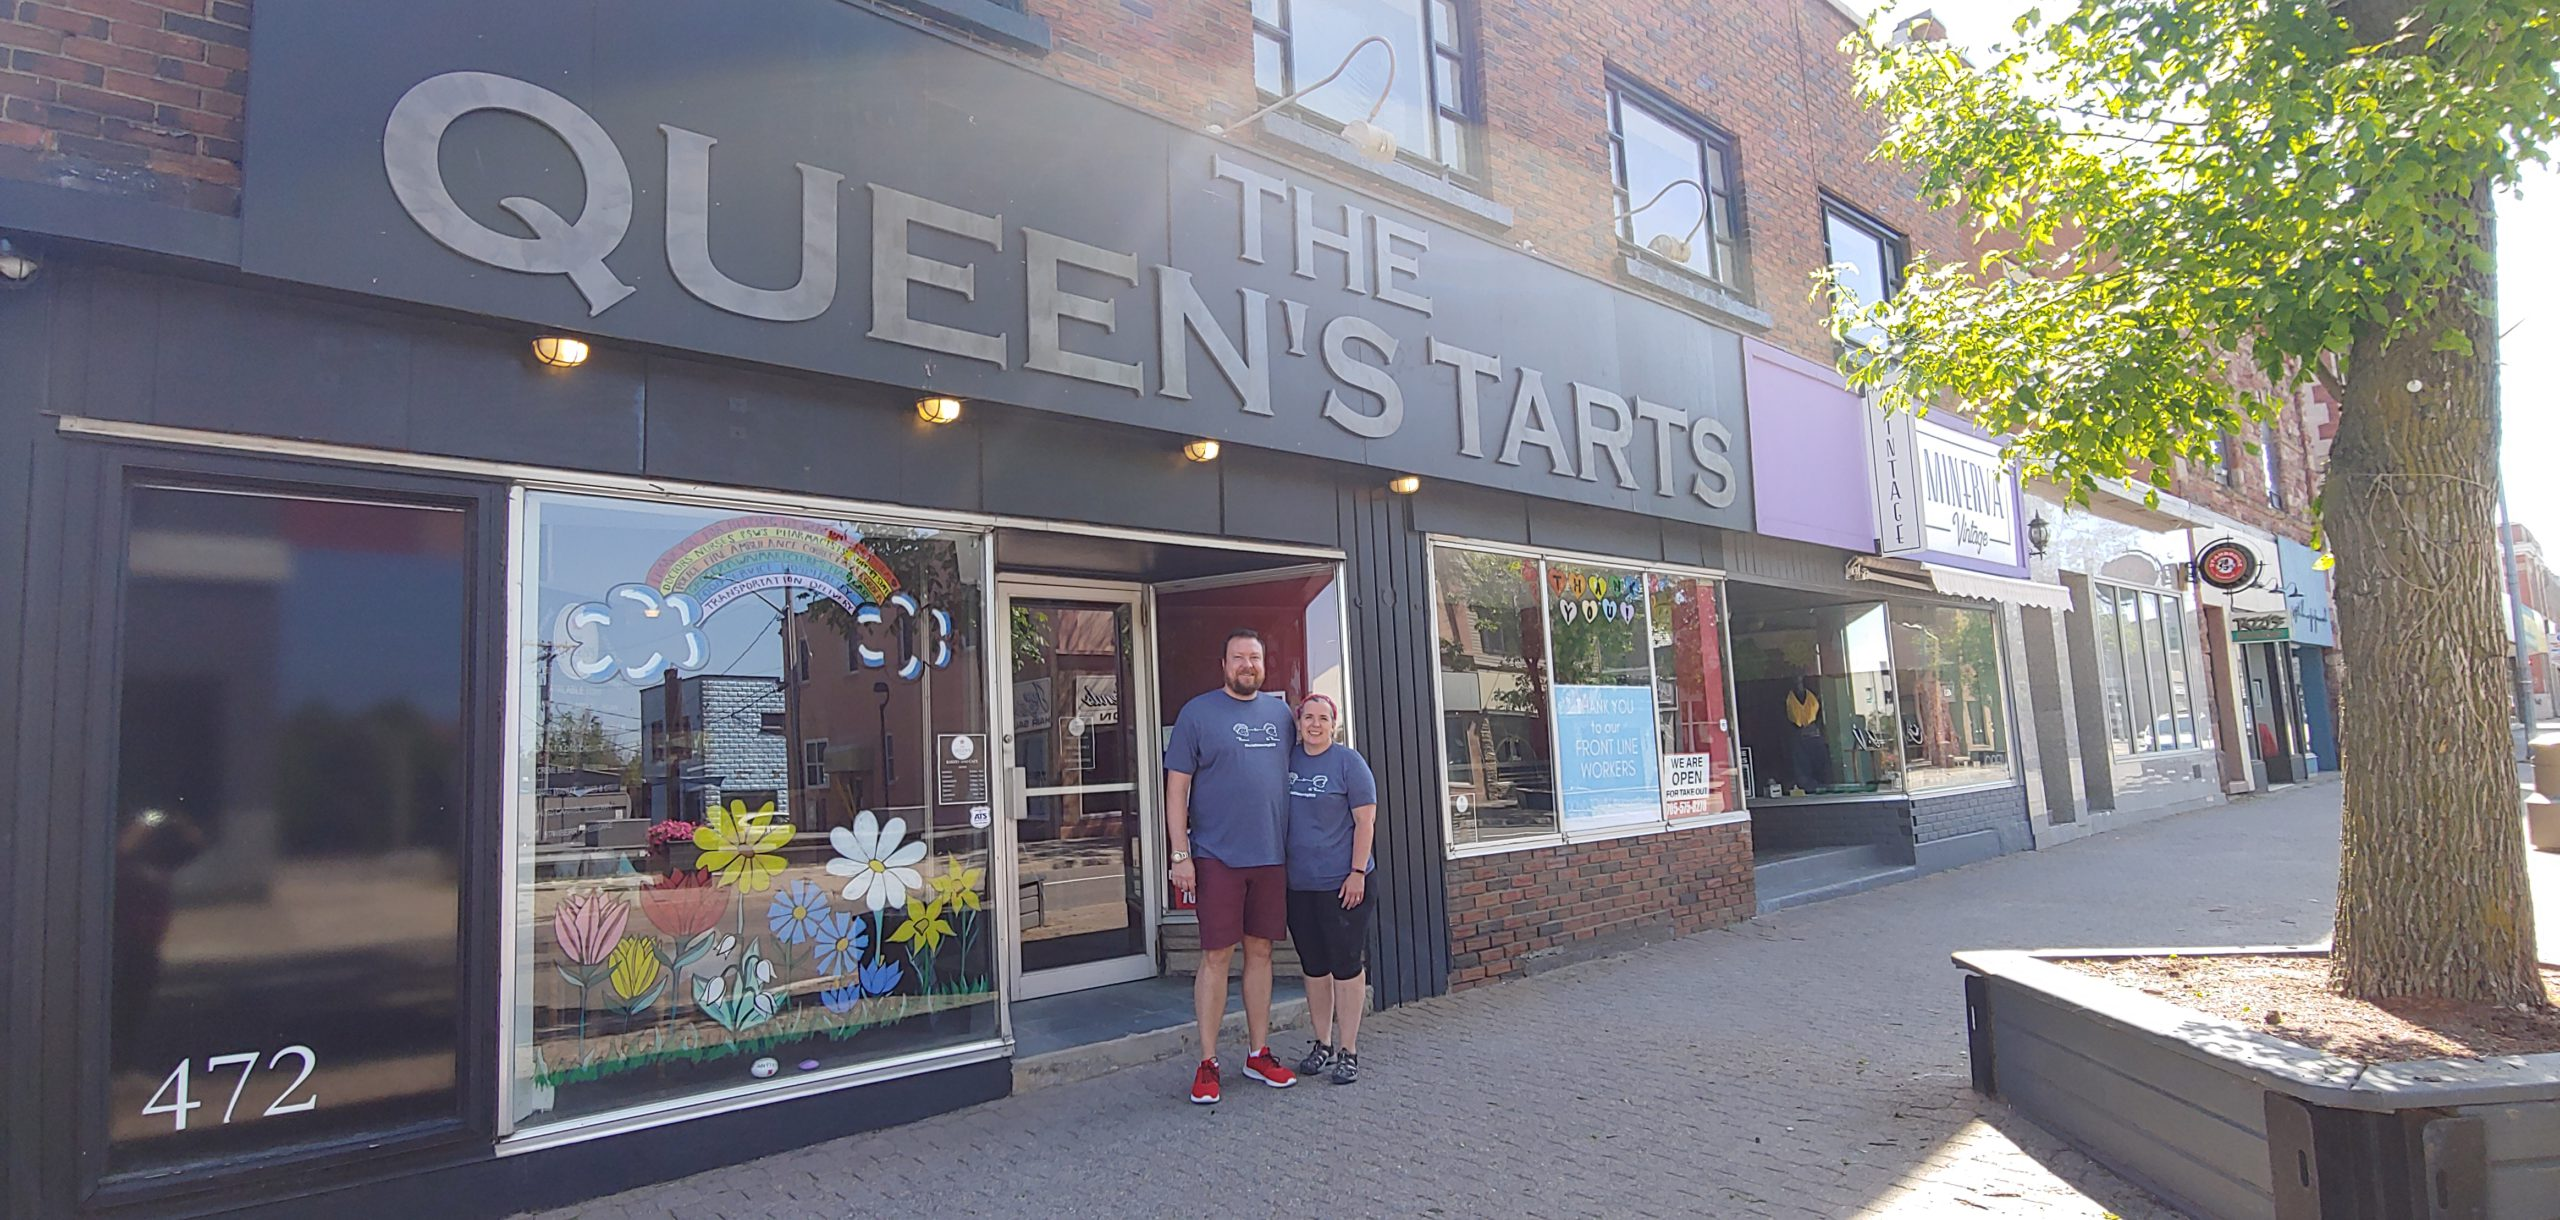 The Queen's Tarts